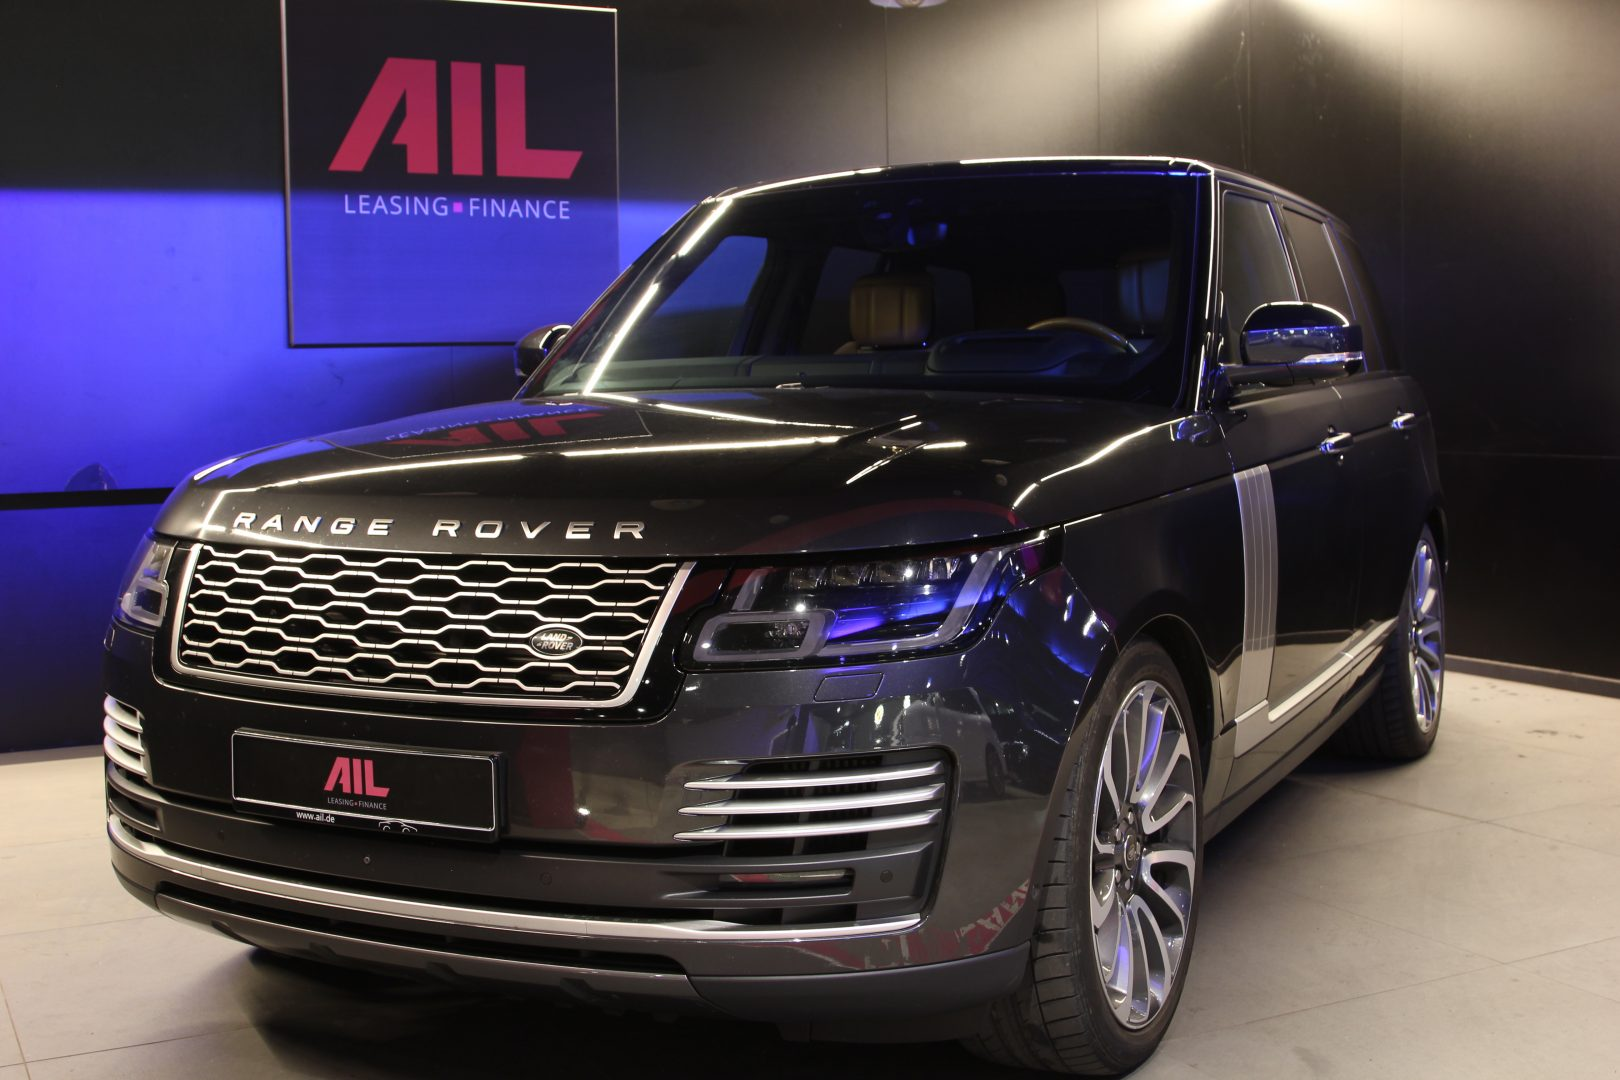 AIL Land Rover Range Rover SDV8 Autobiography 1